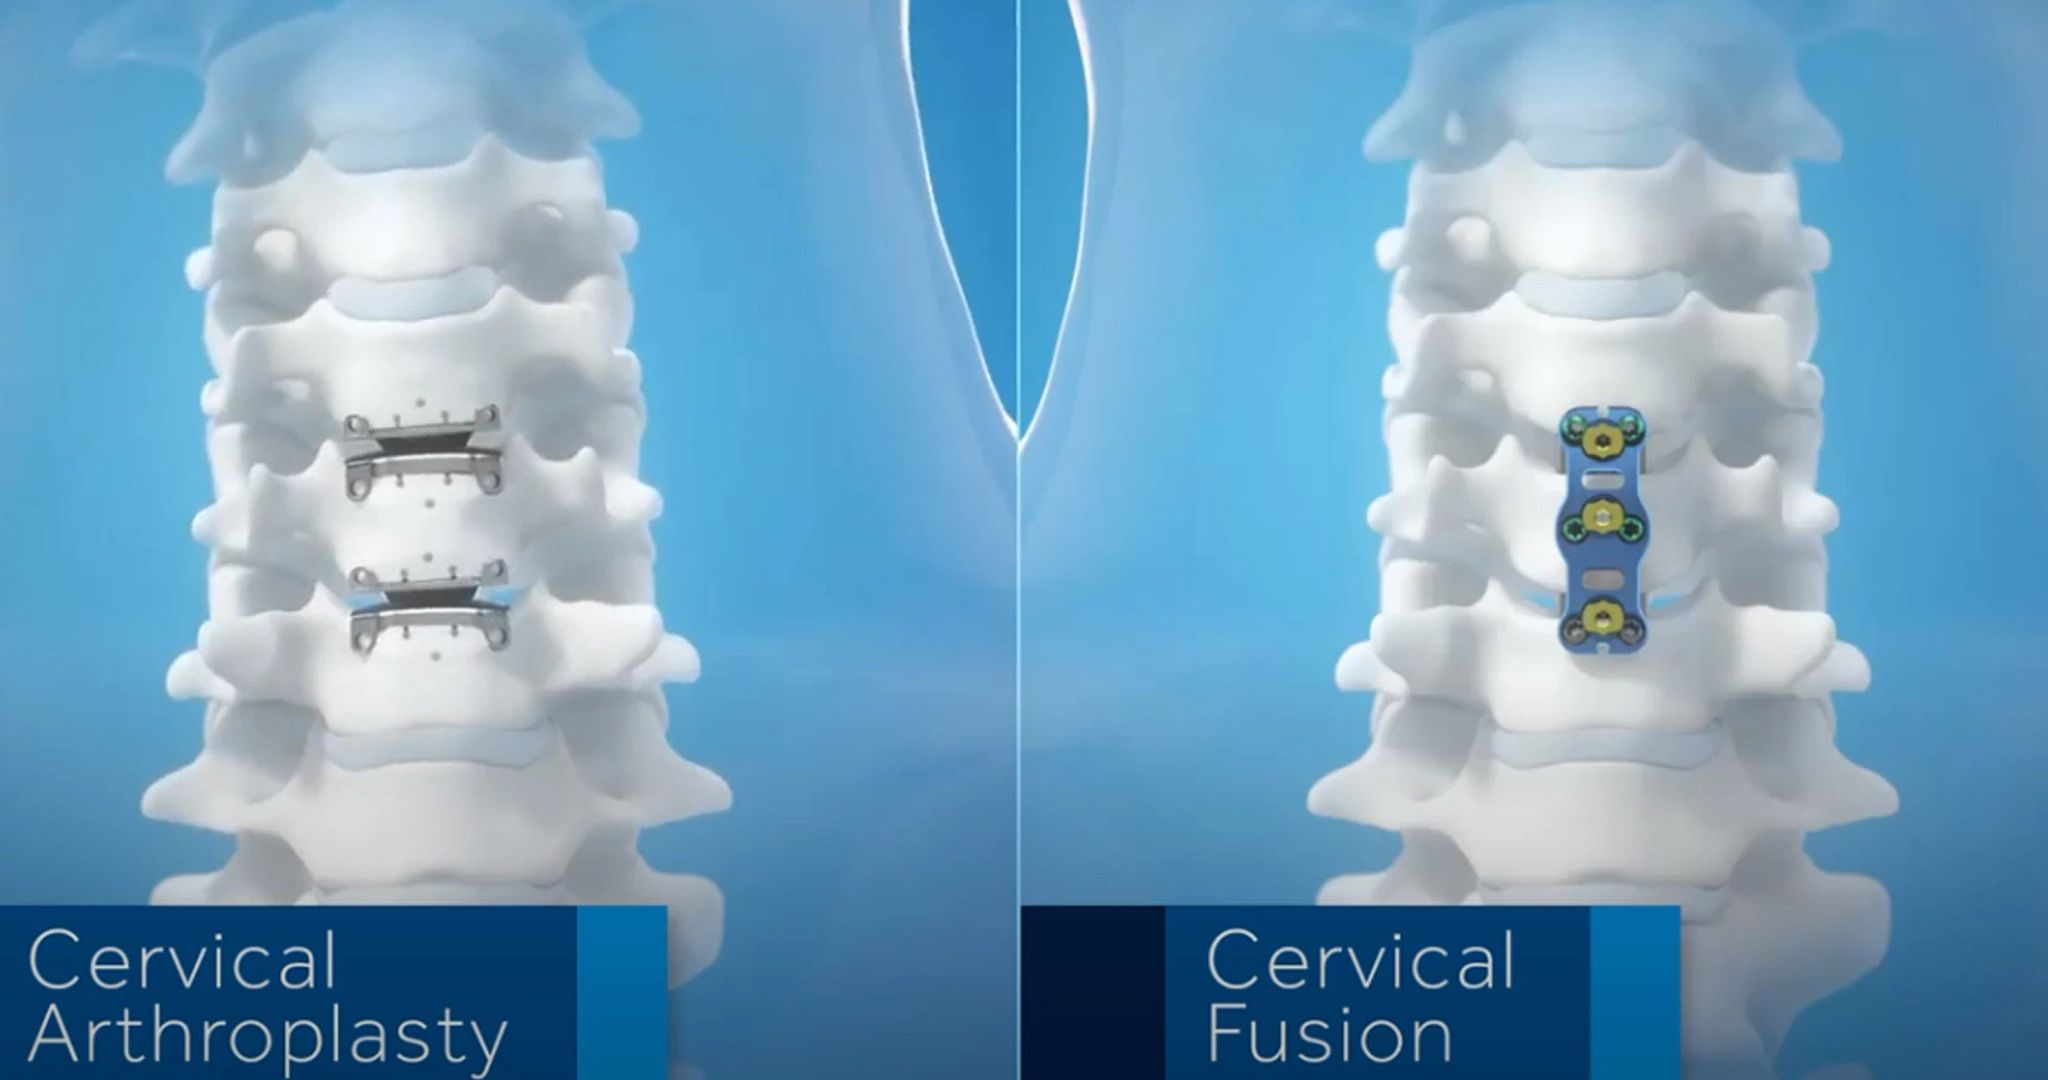 Watch a video about Cervical Arthroplasty Compared to Cervical Fusion